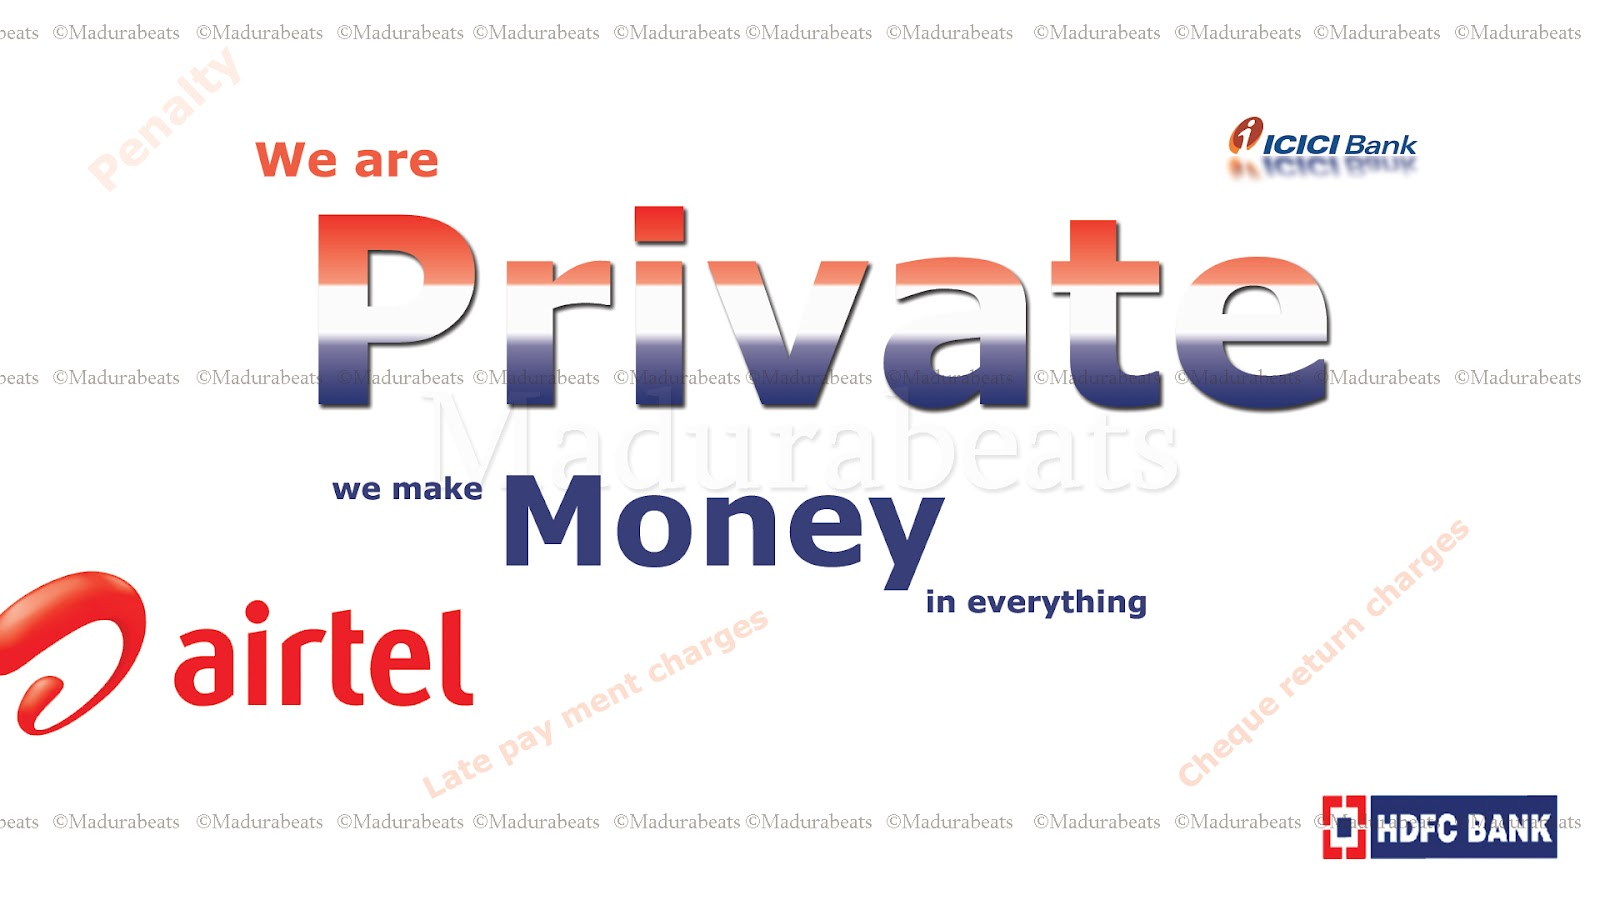 Penalty to Private - Why should pay Penalty charges to Private companies; we are private we make money in every thing